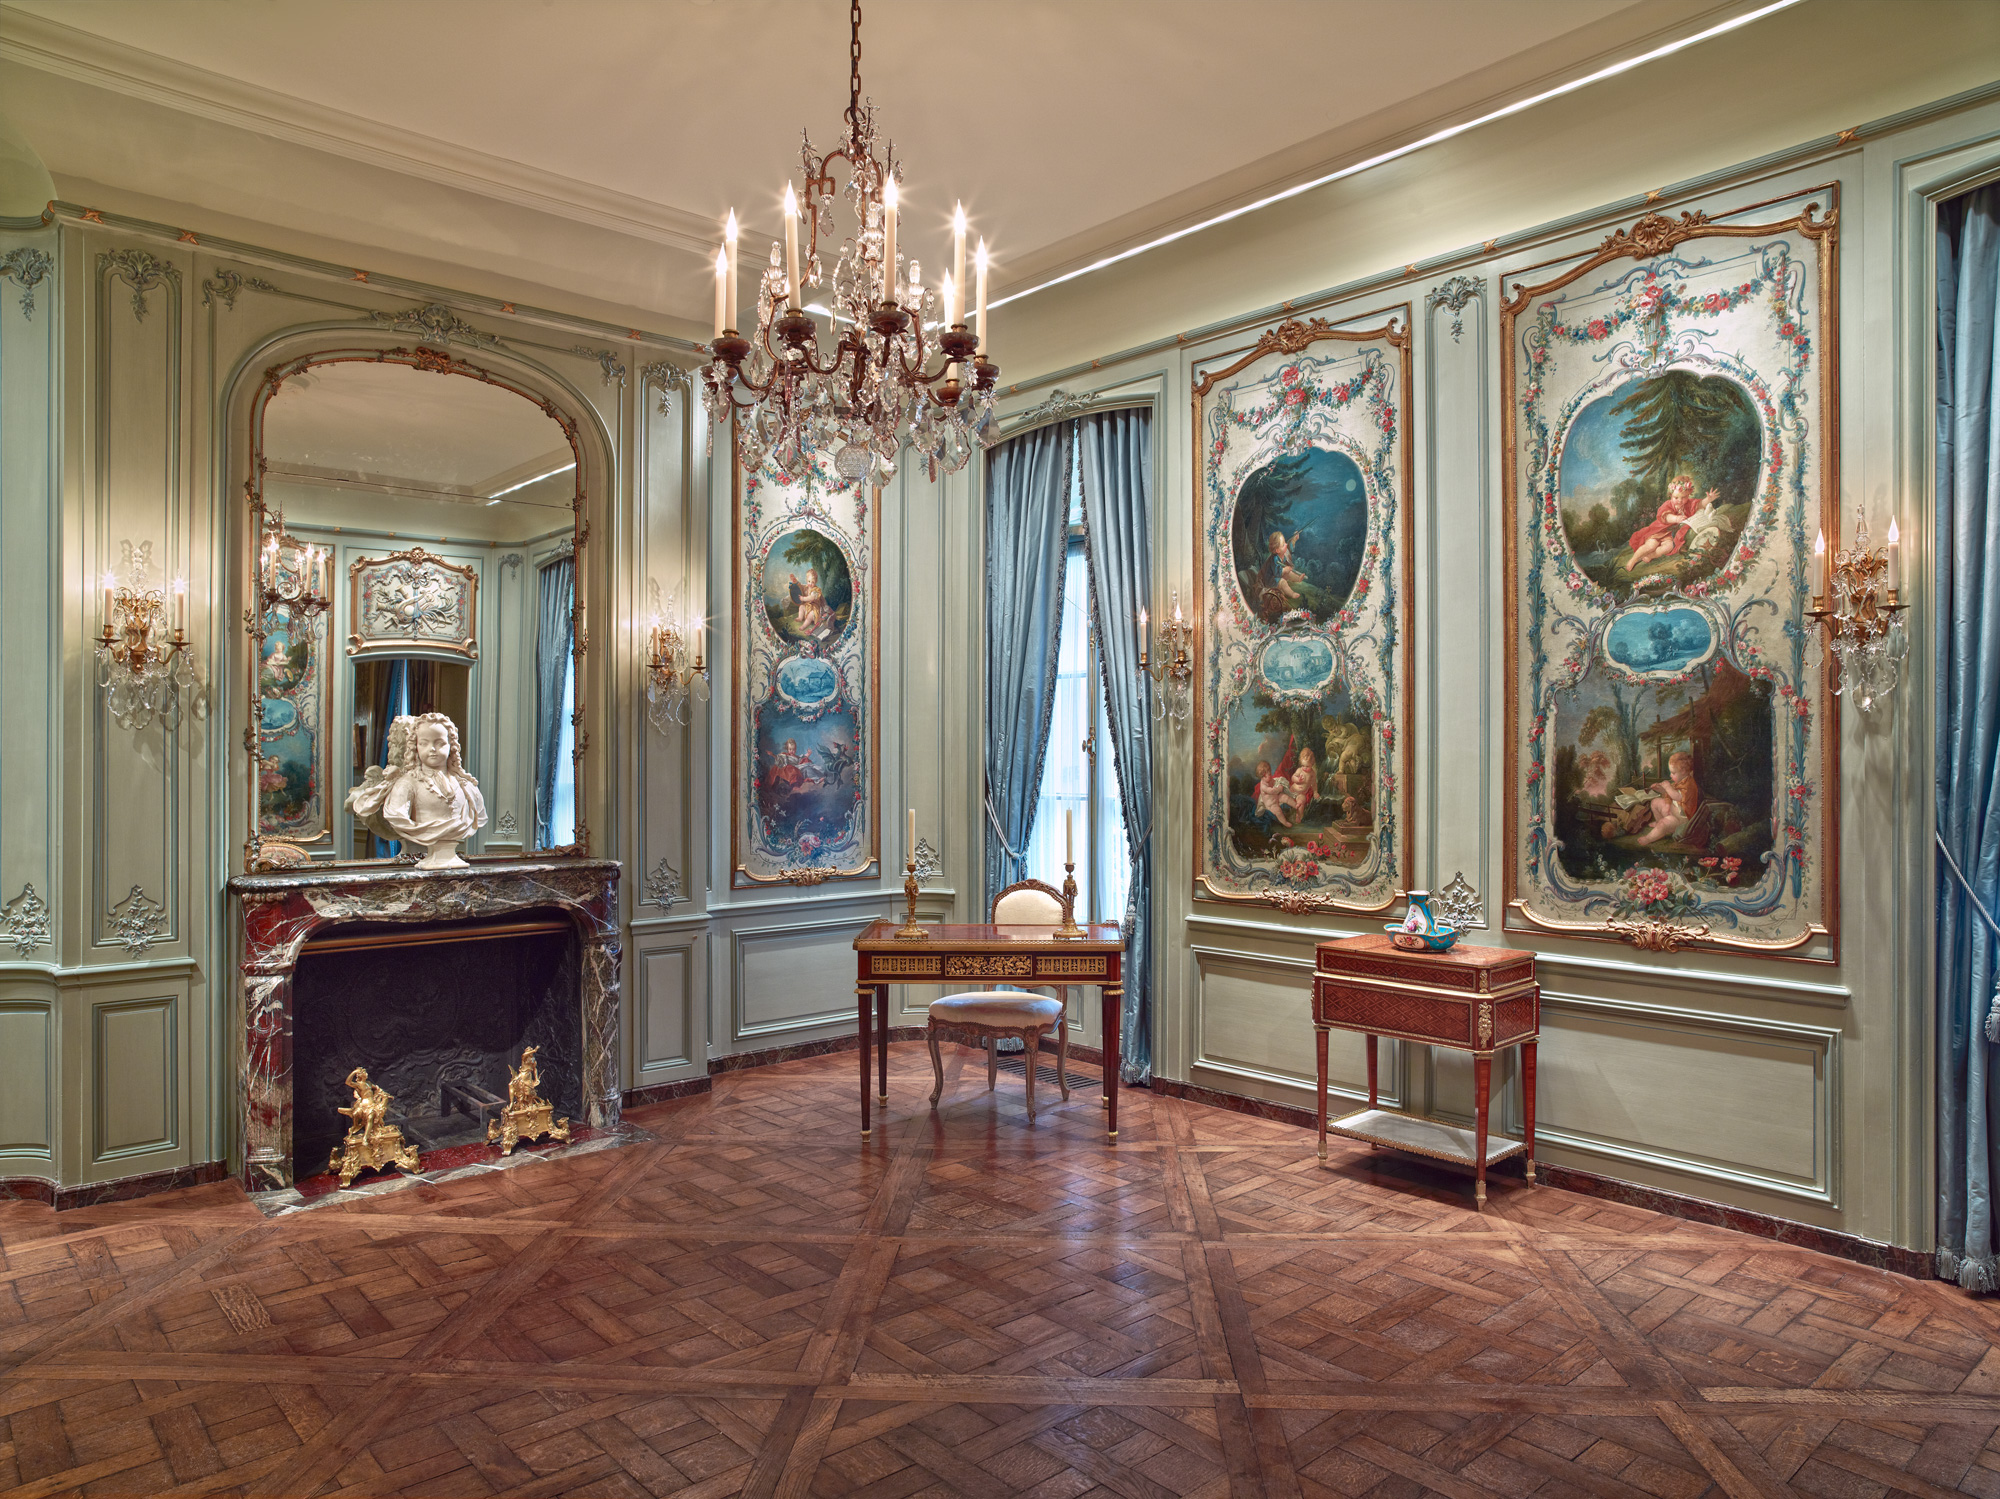 Boucher Room At The Frick Museum In New York From The